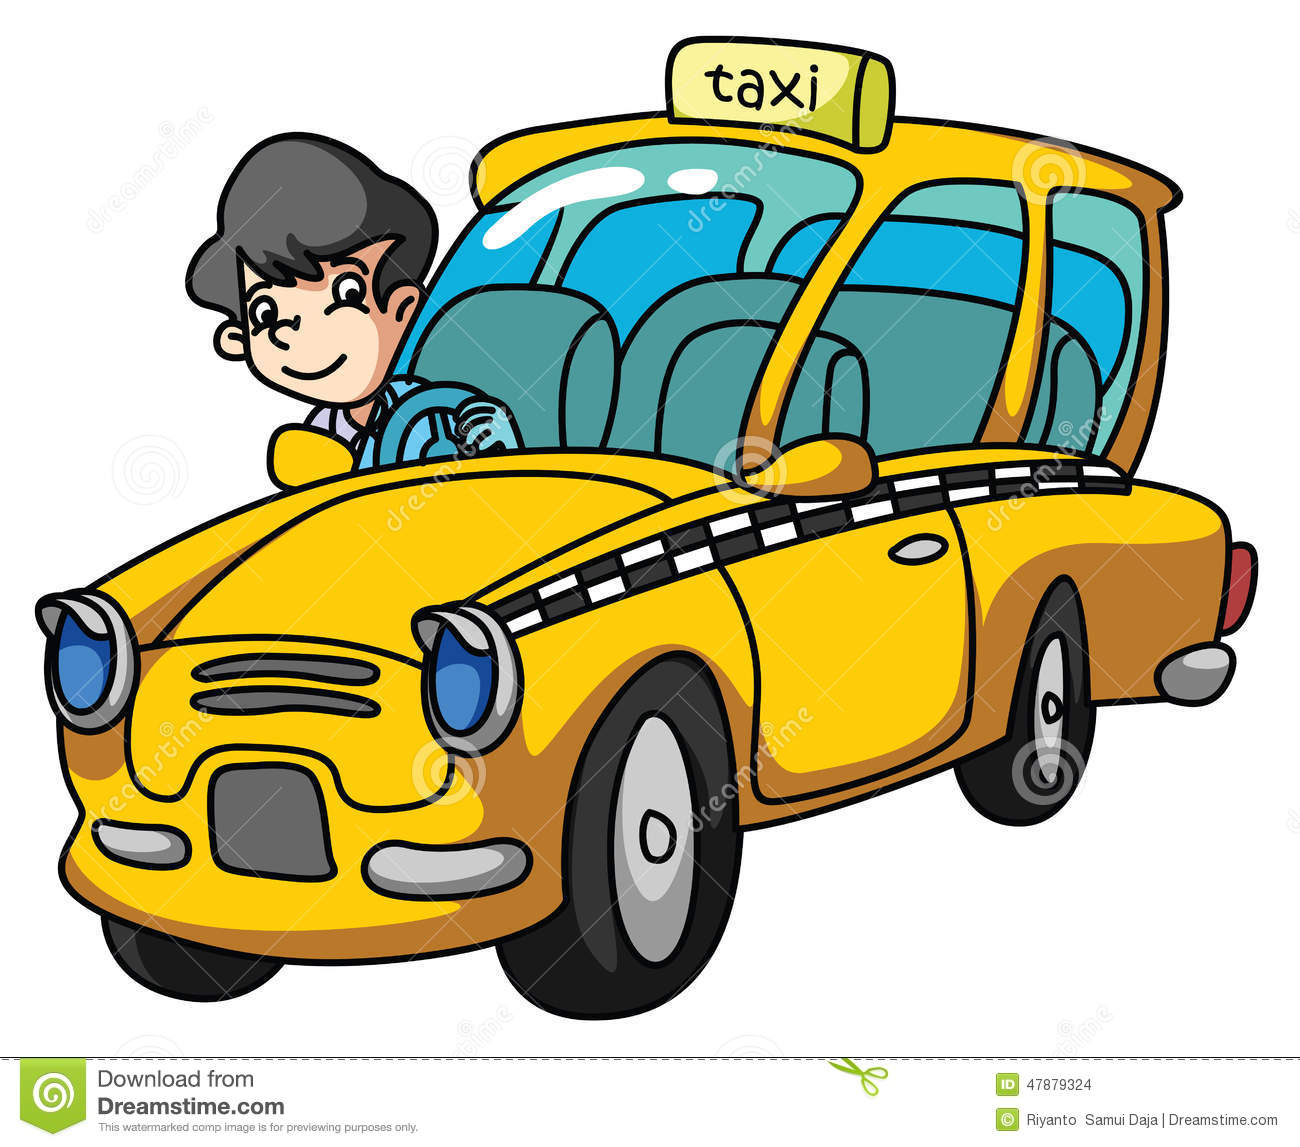 Taxi Cab Images.